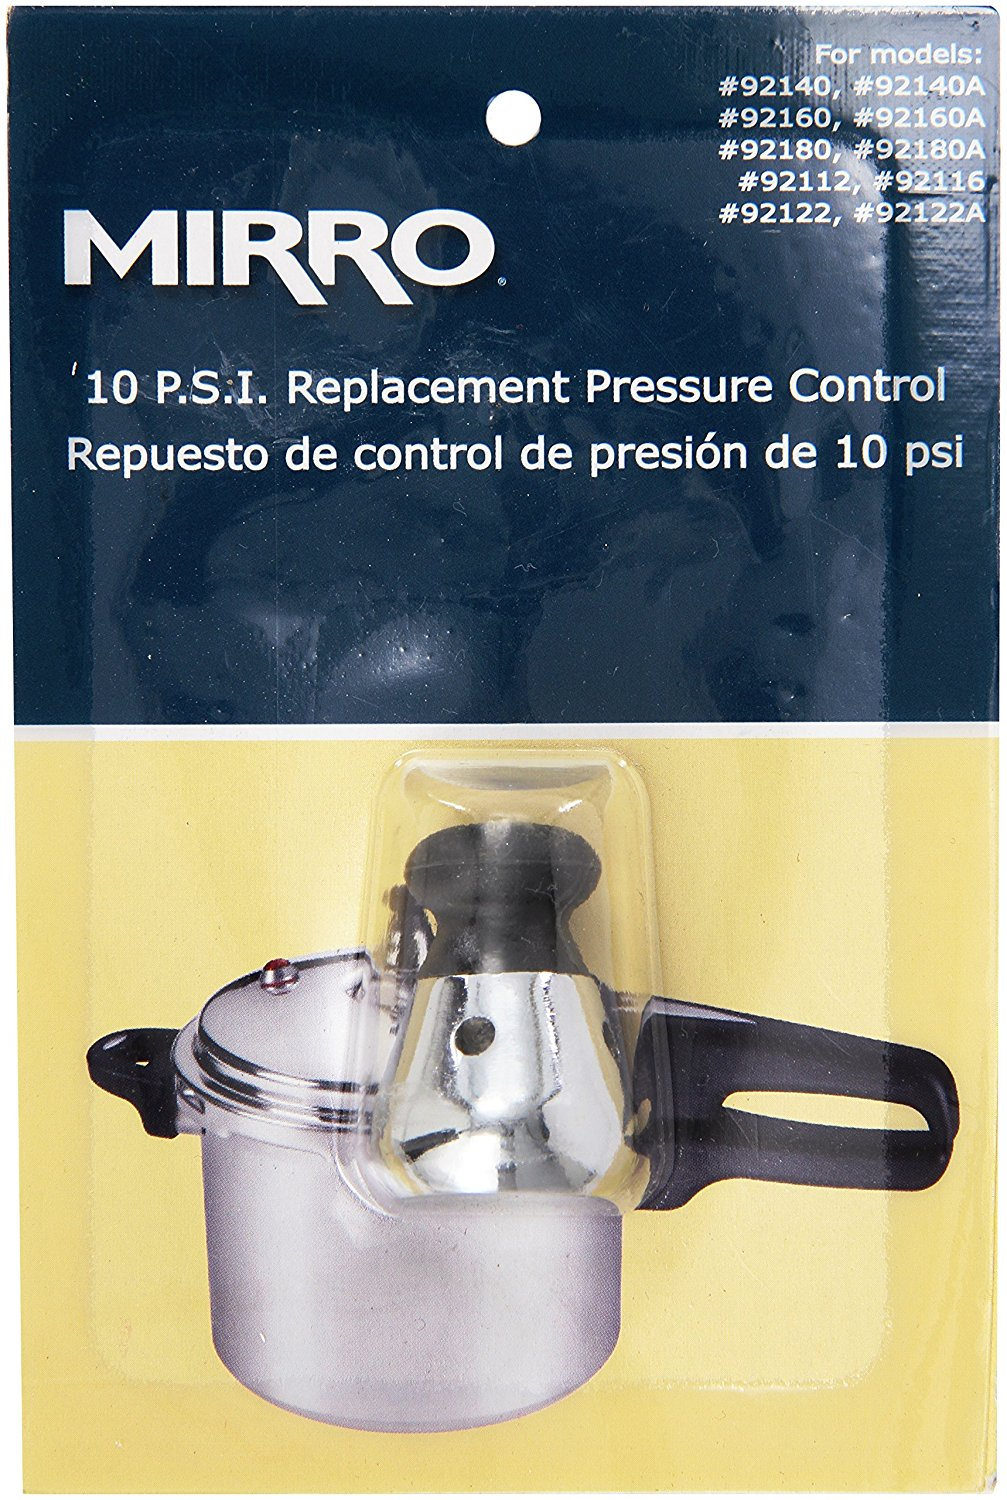 92110 Stainless Steel Pressure Cooker and Canner Control, 10-PSI for Model 92140 92140A 92160 92160A 92180... by